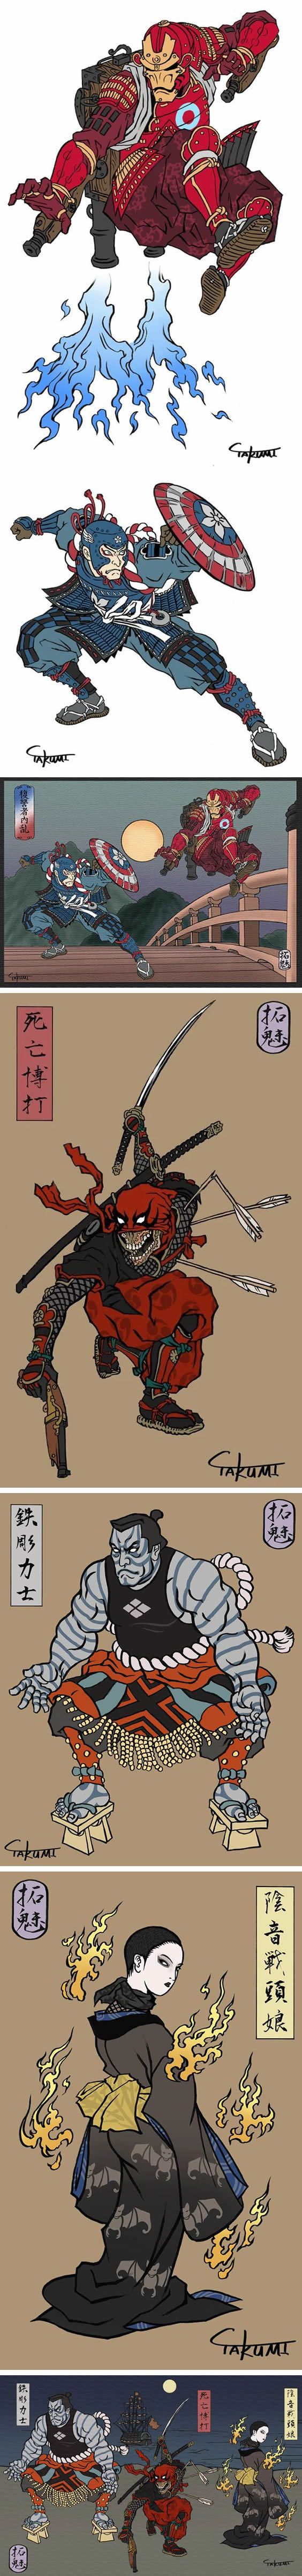 Artist reimagined marvel heroes in ancient Japanese art style